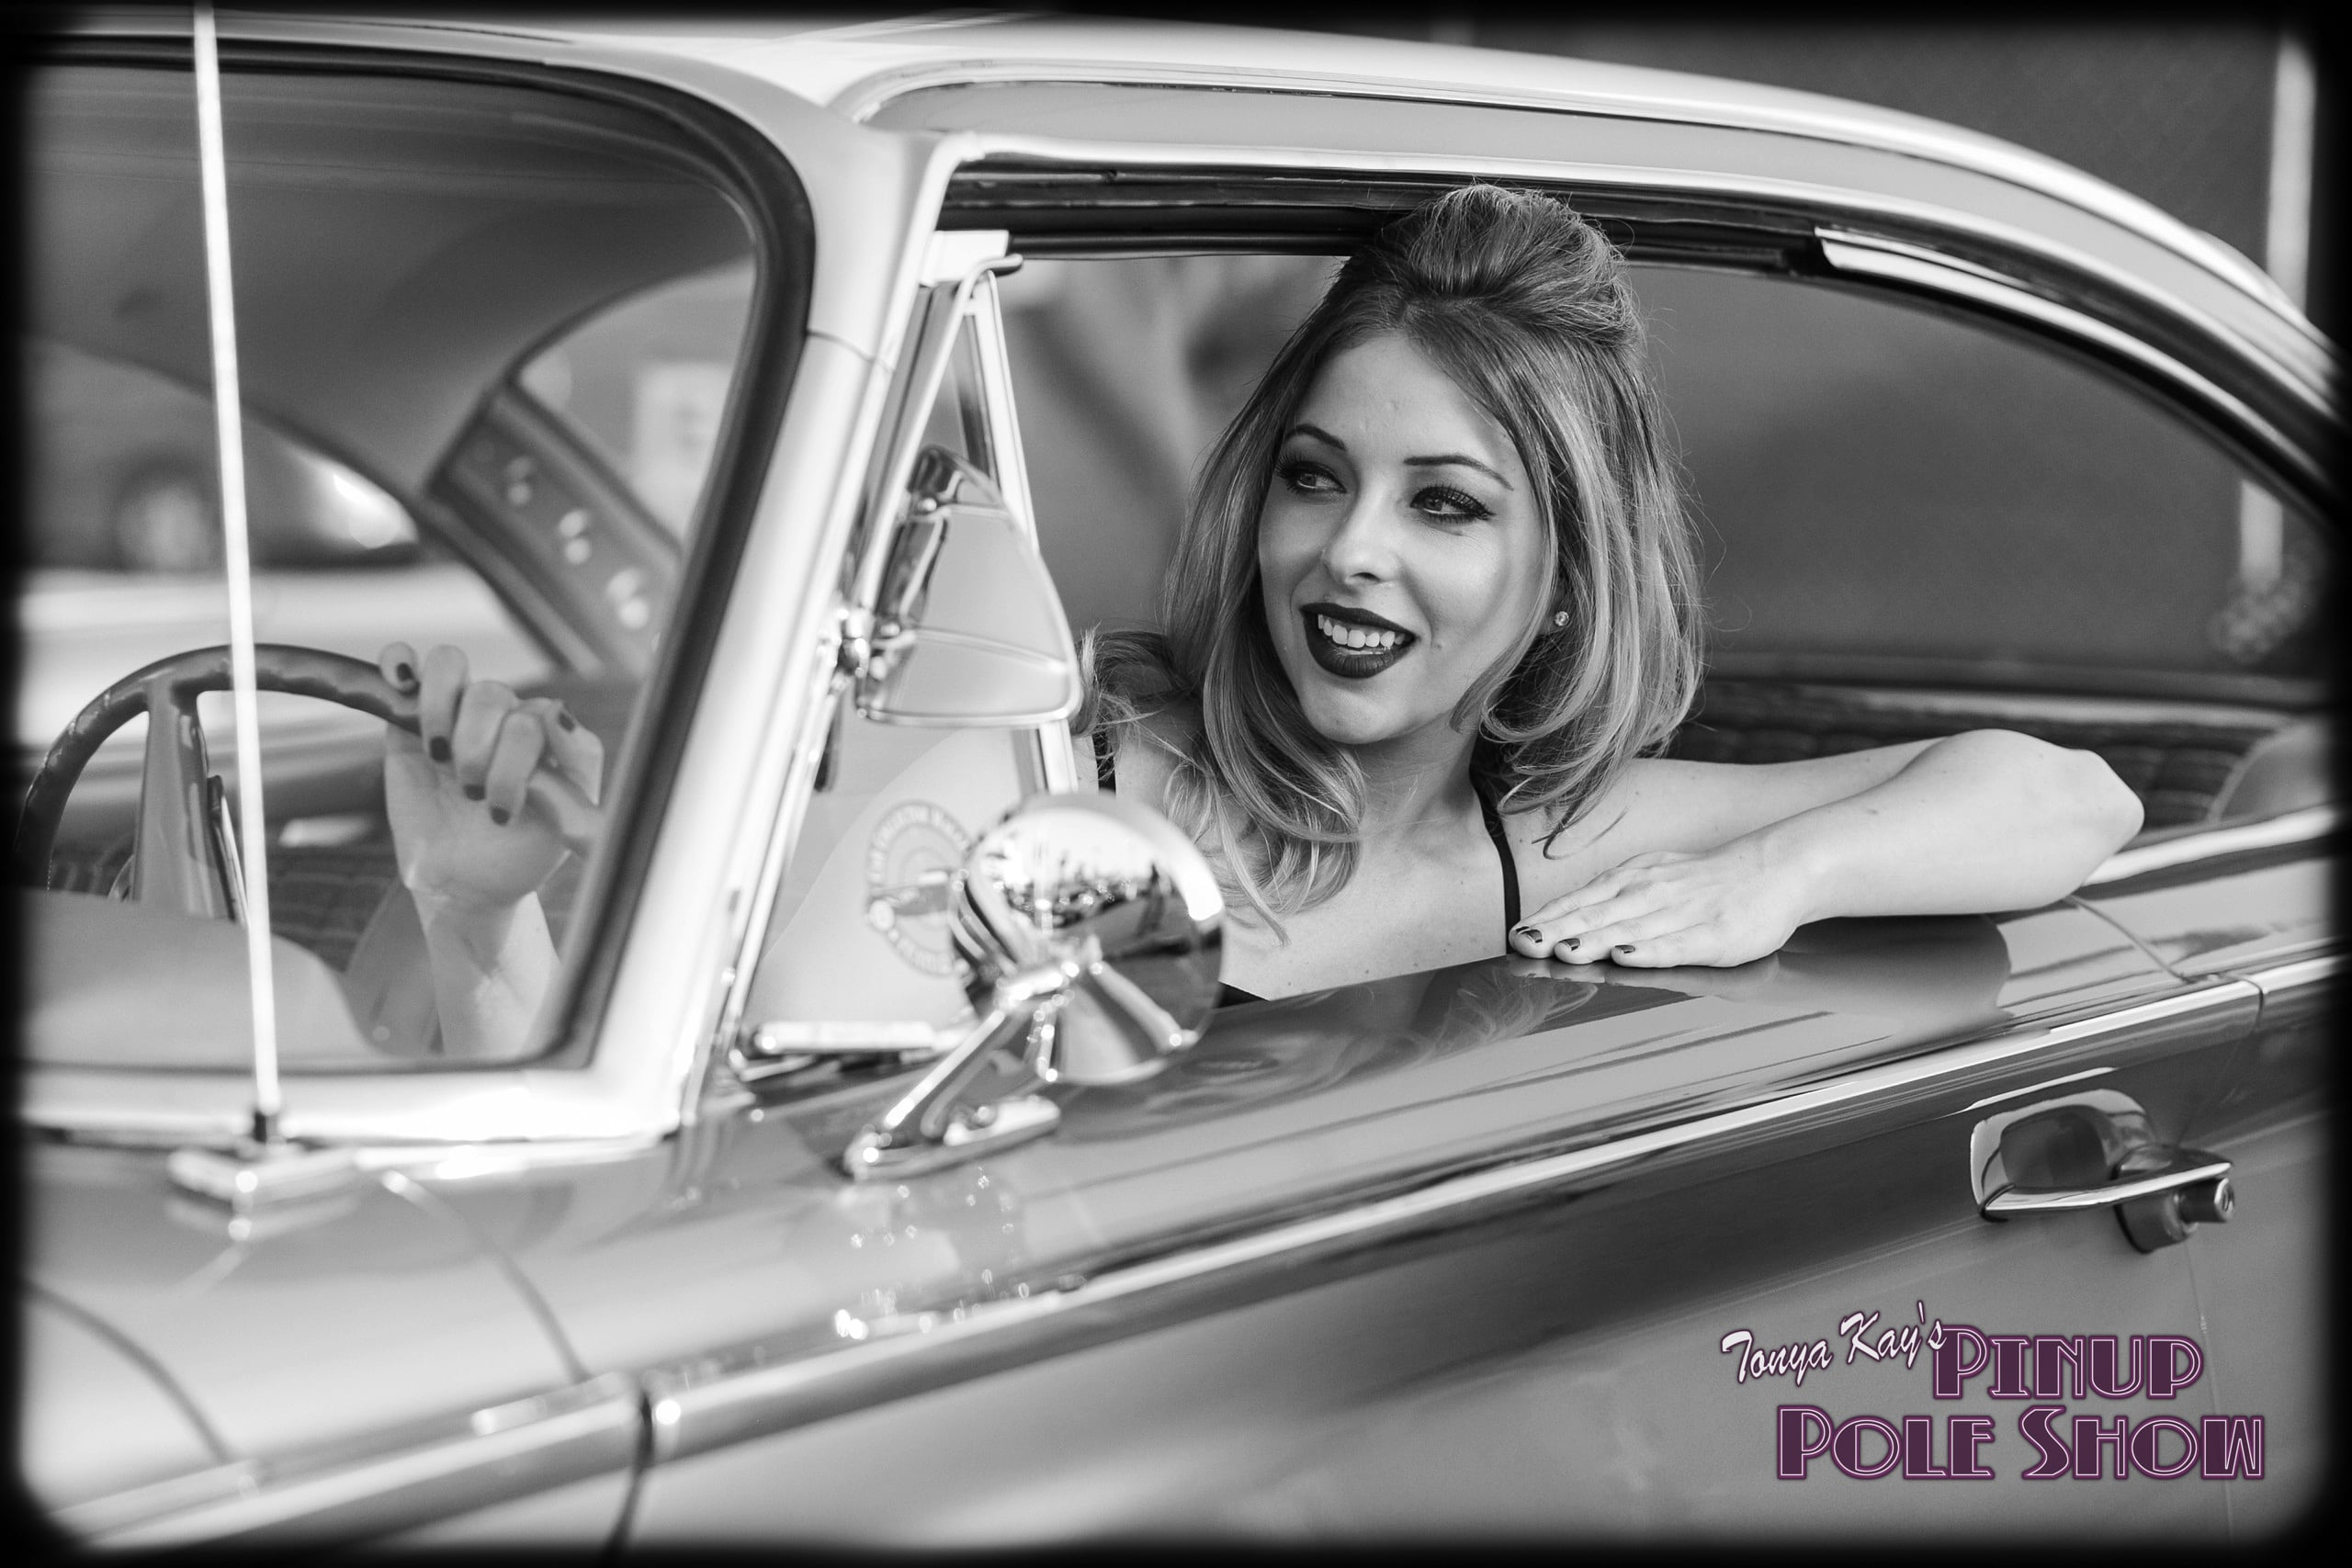 Pinup Pole Show Pinup of the Week: Robyn Baker